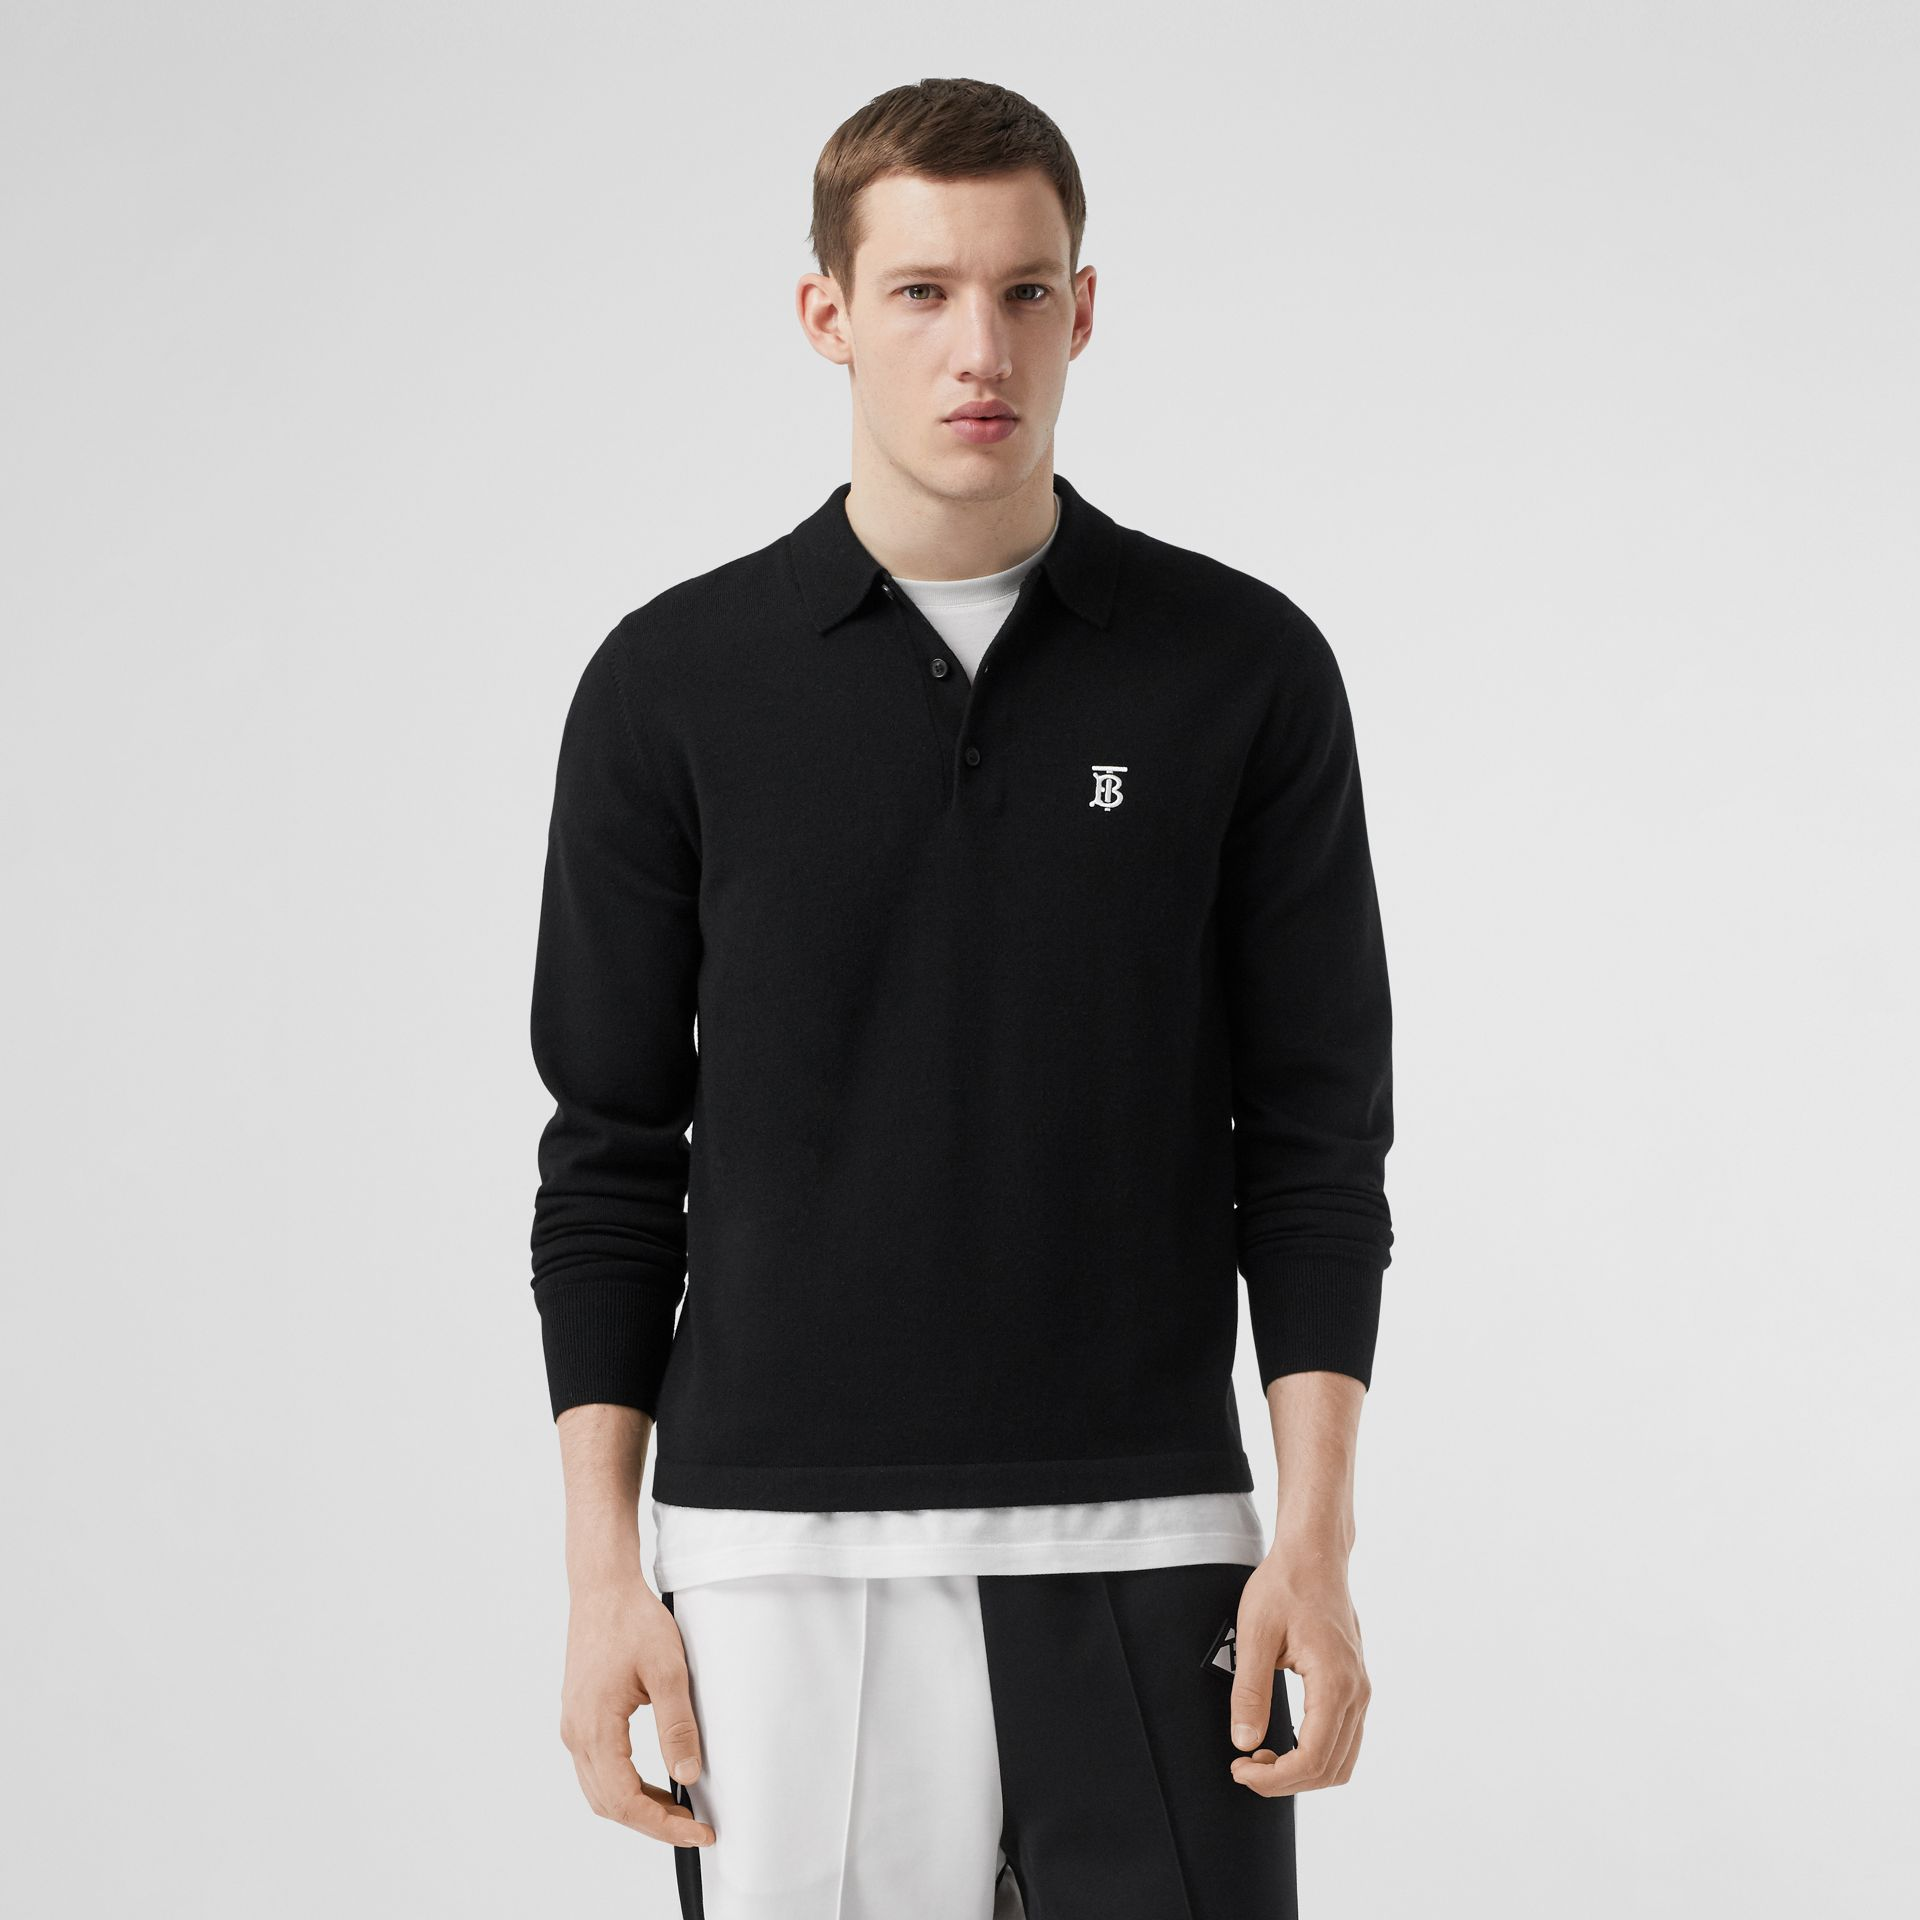 Long-sleeve Monogram Motif Merino Wool Polo Shirt in Black - Men | Burberry Singapore - gallery image 4